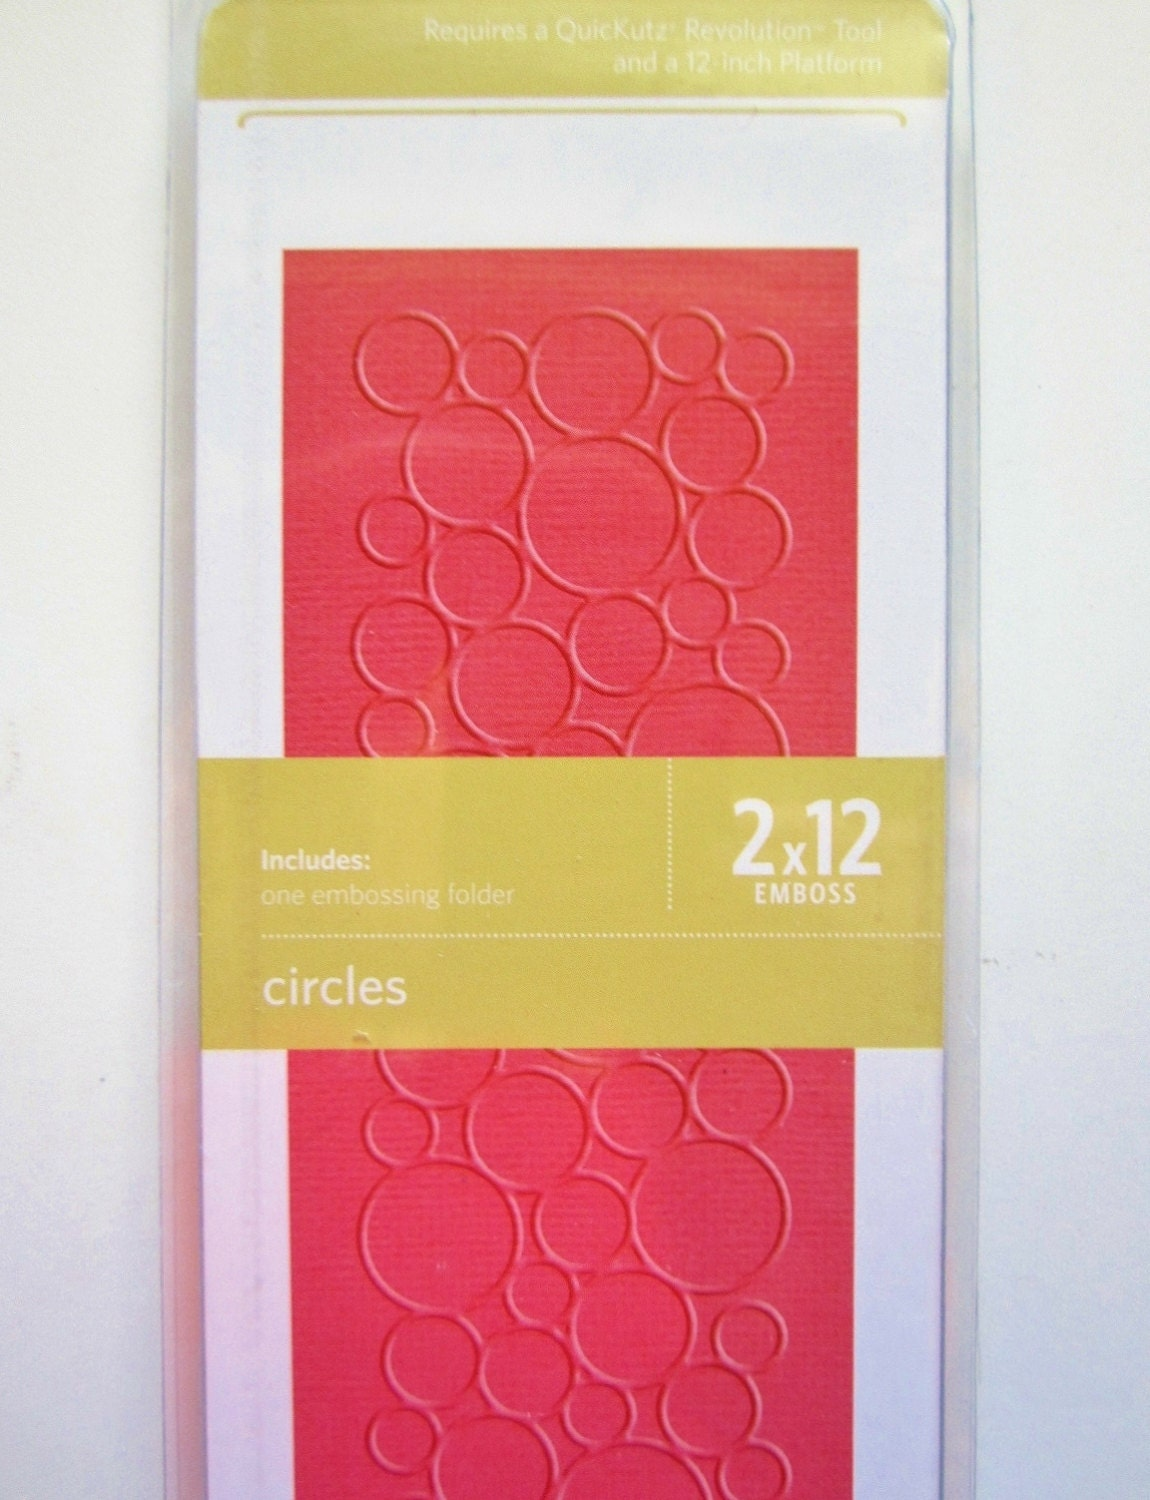 Lifestyle crafts embossing folders - Sold By Scrapinators